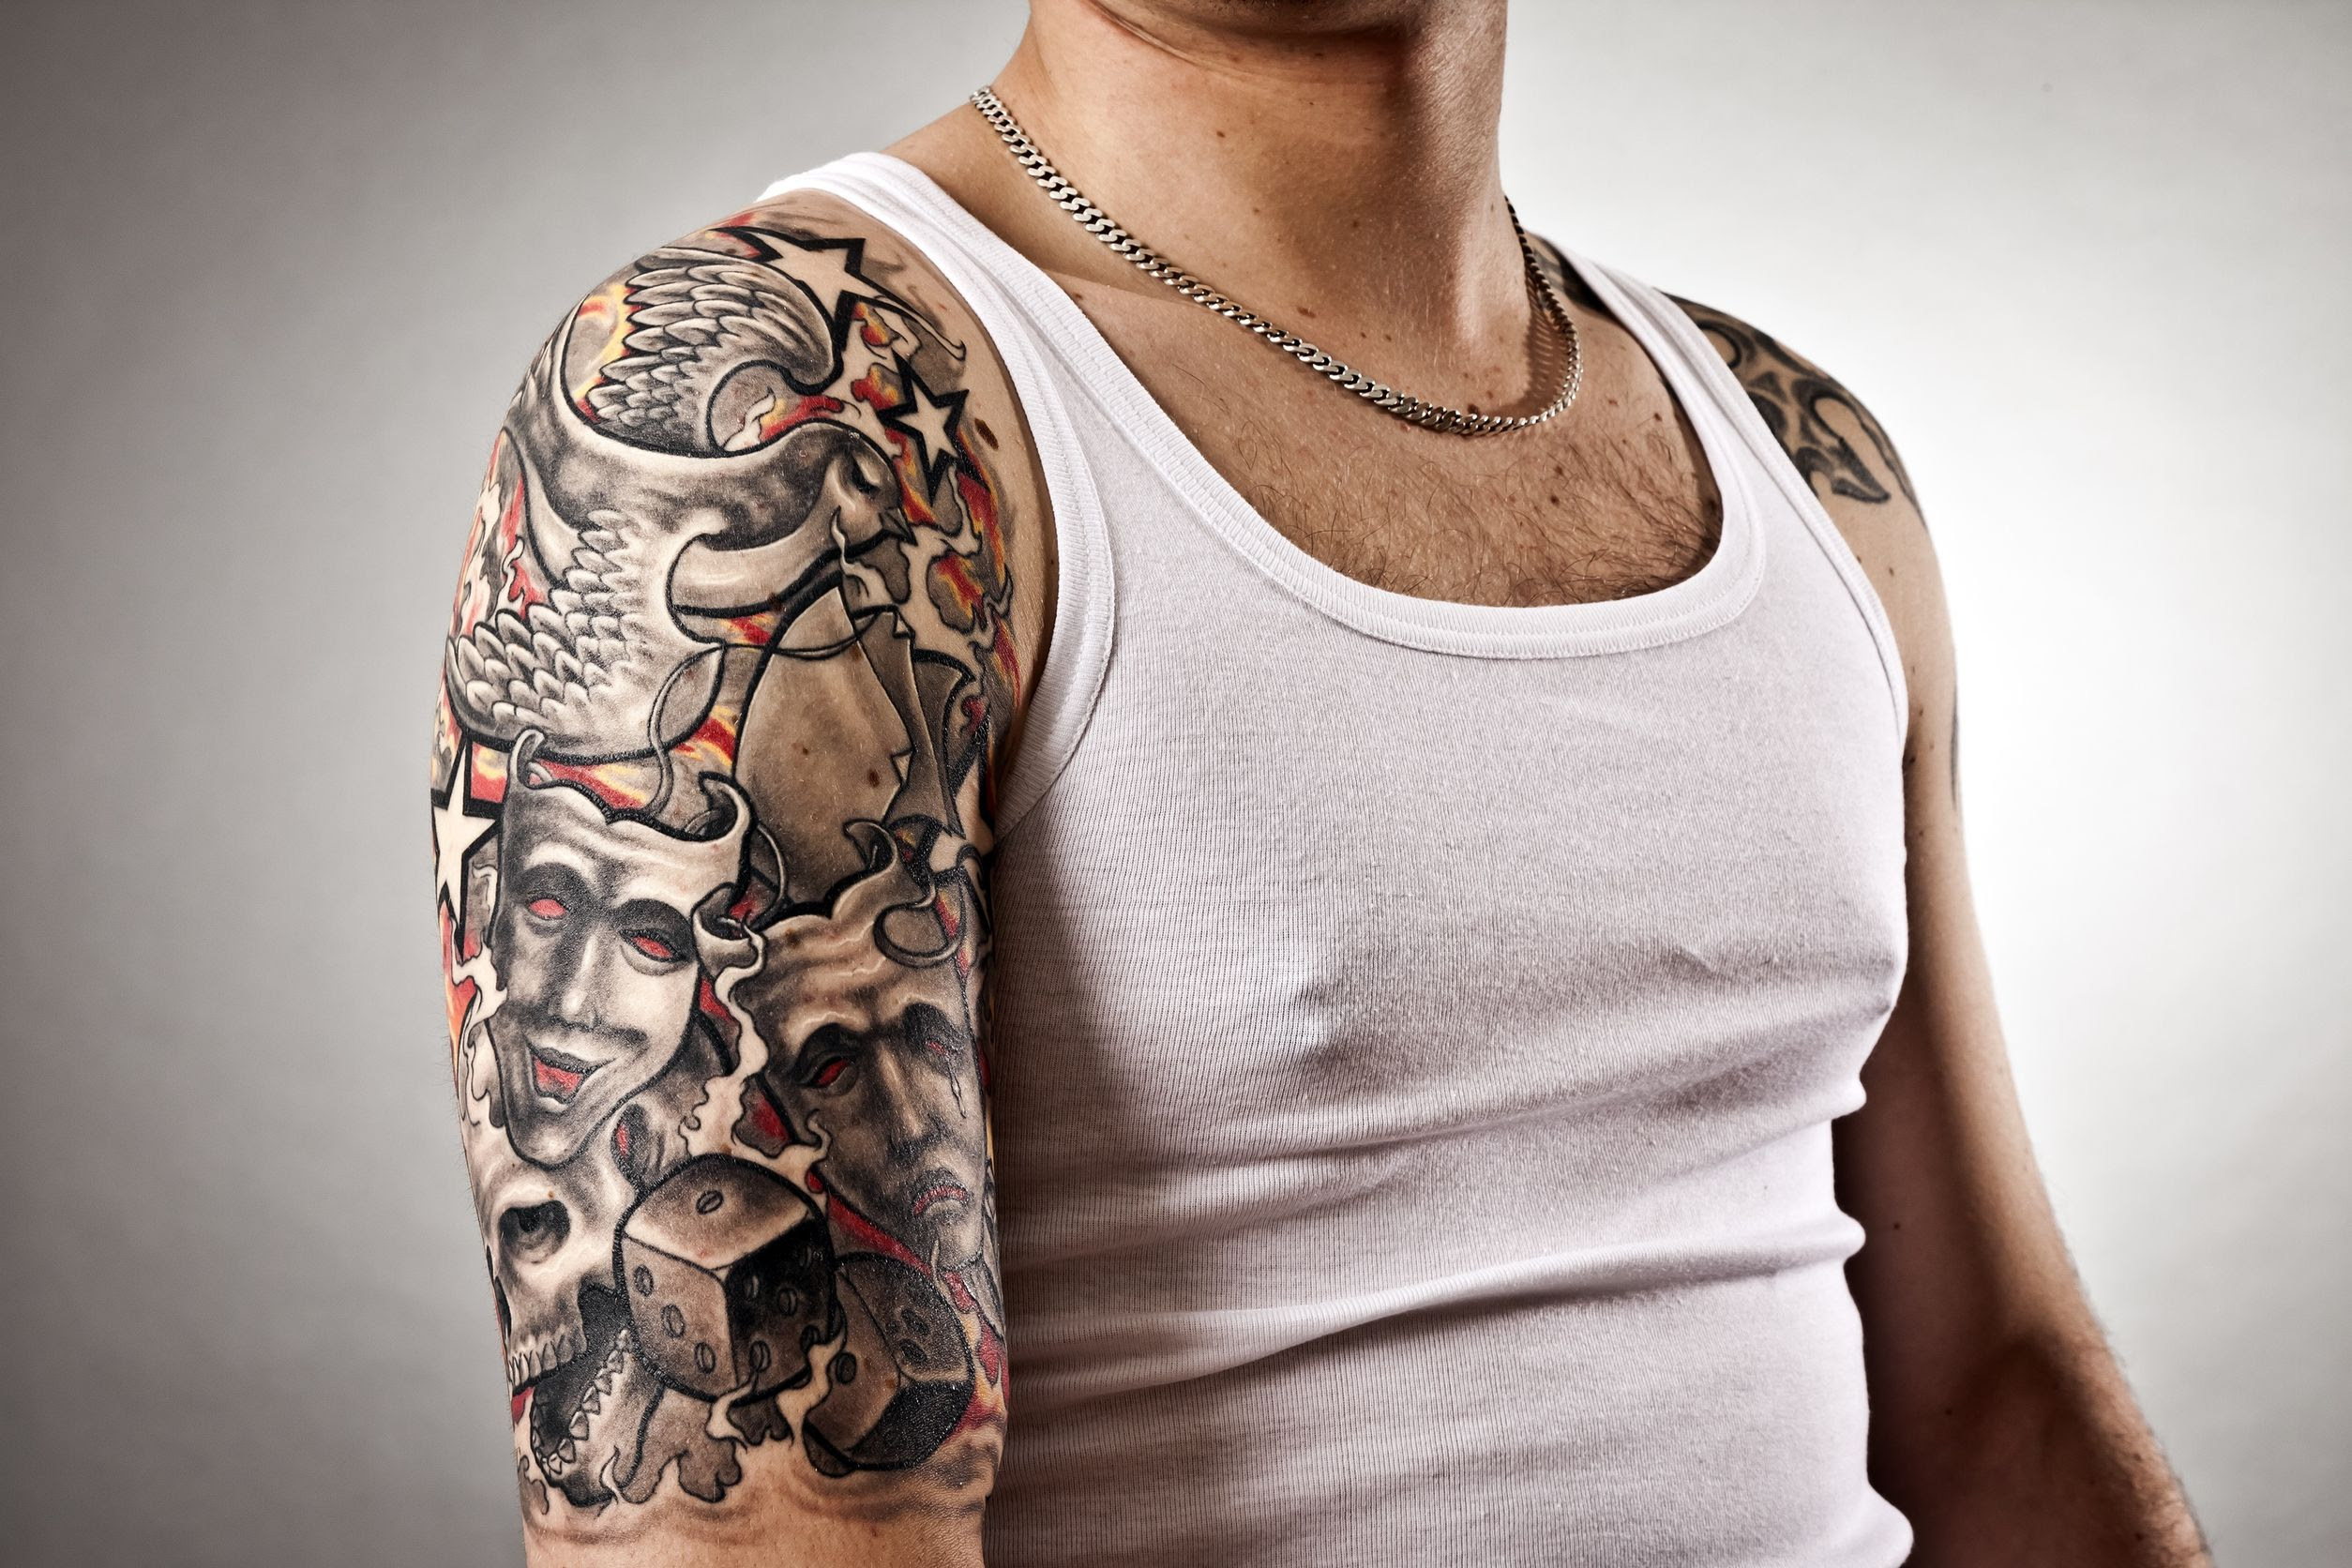 Dermatix Can You Tattoo Over Scars